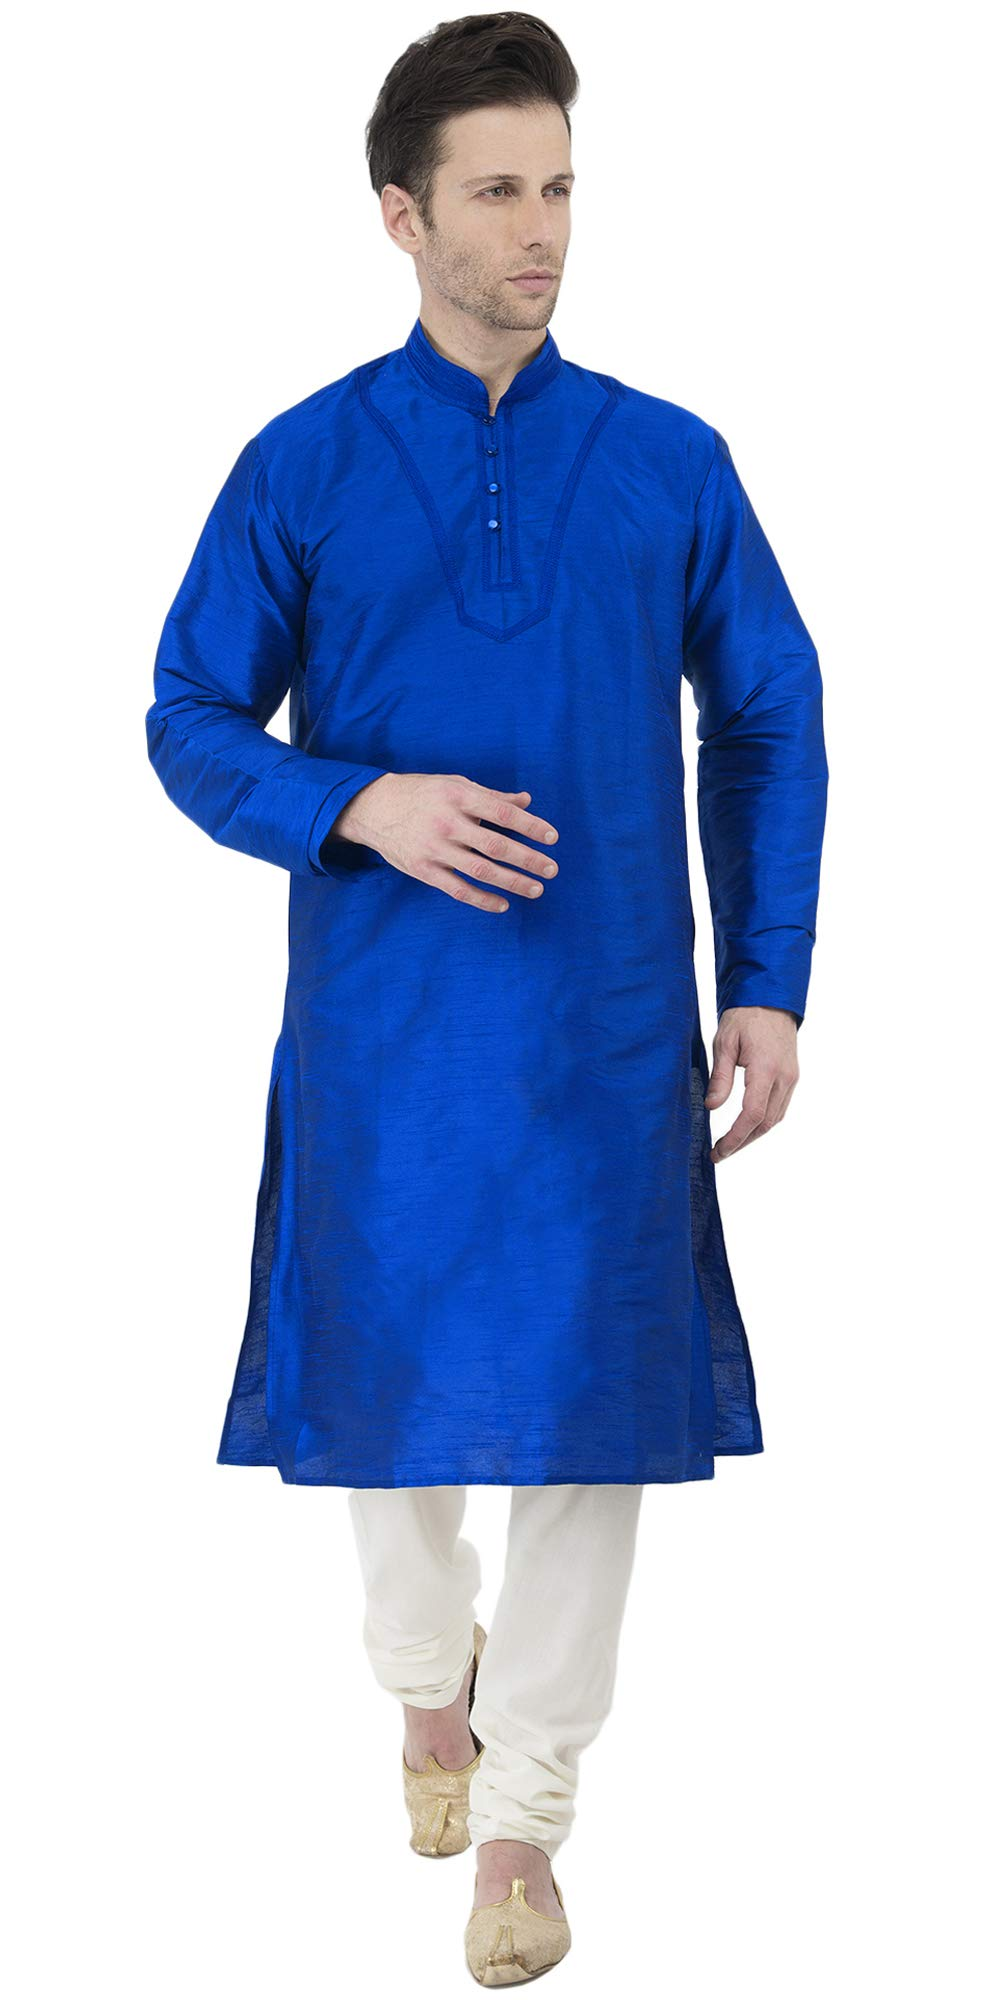 Kurta Pajama Long Sleeve Button Down Dress Shirt Indian Men Wedding Ethnic Casual Dress Traditional Set -XL